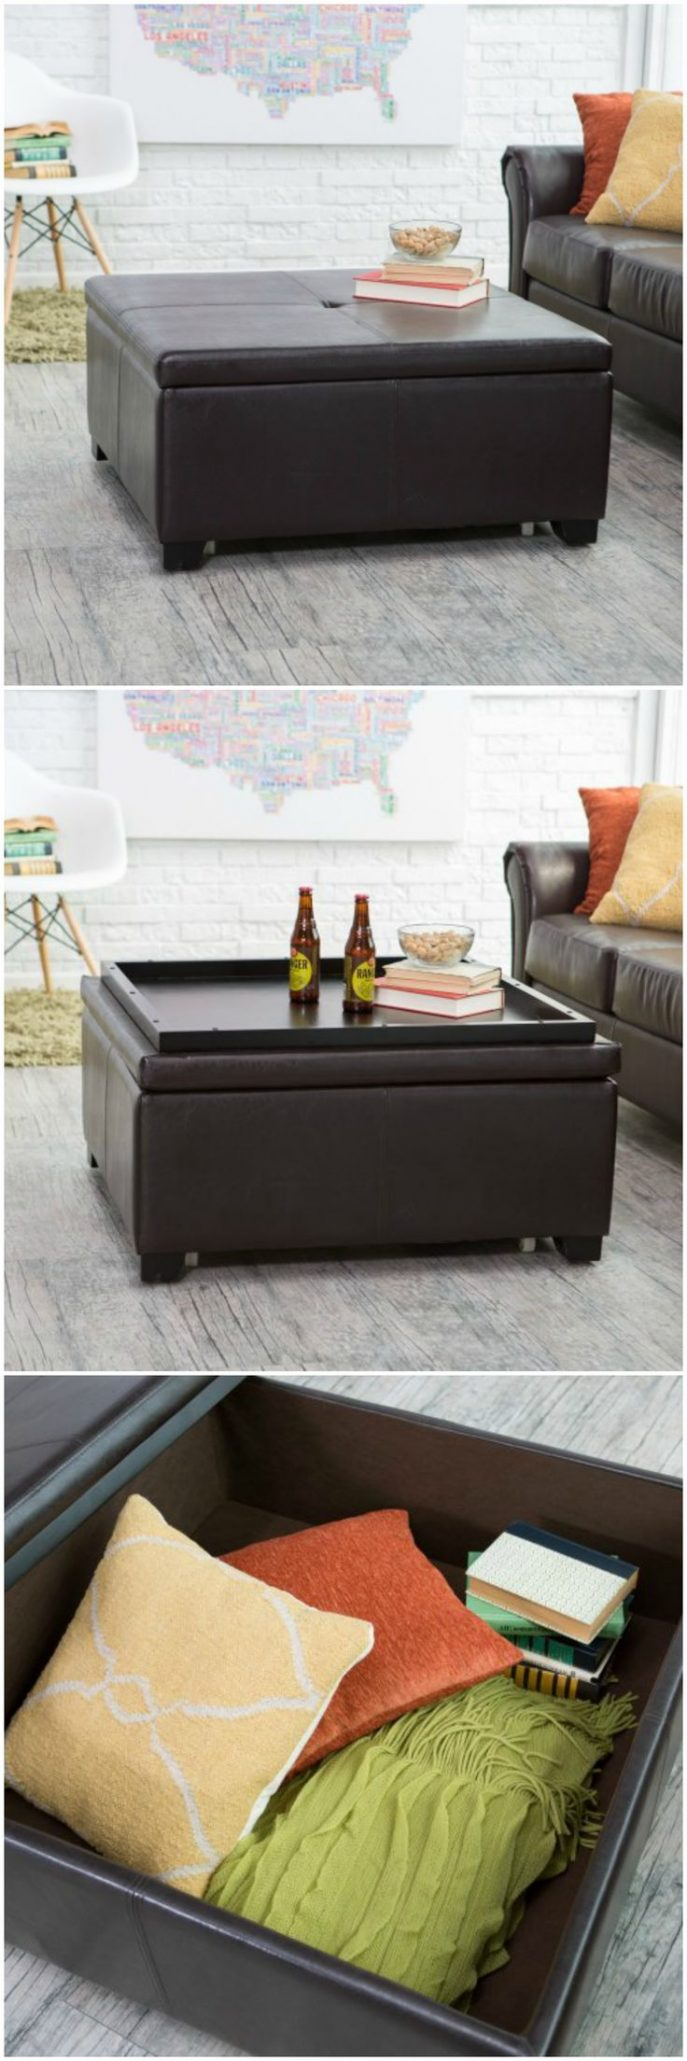 Round Ottoman Coffee Table with Storage | Ottomans as Coffee Table | Large Ottoman Coffee Table